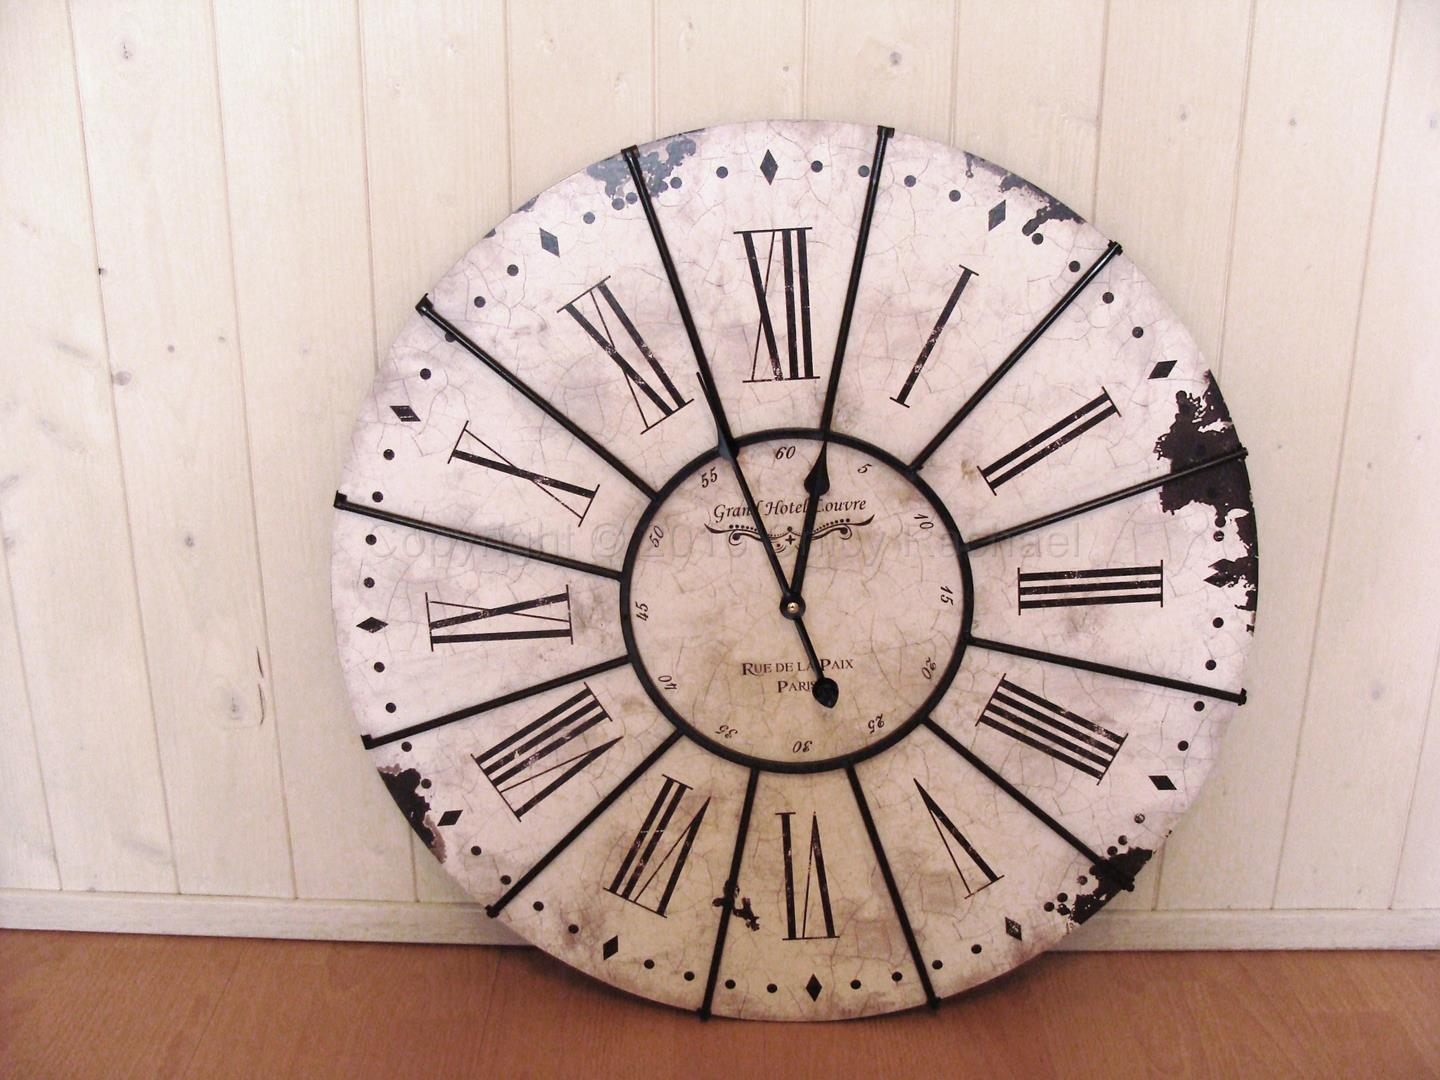 Grand Hotel Louvre Large Antiqued White Wall Clock Chicy Rachael